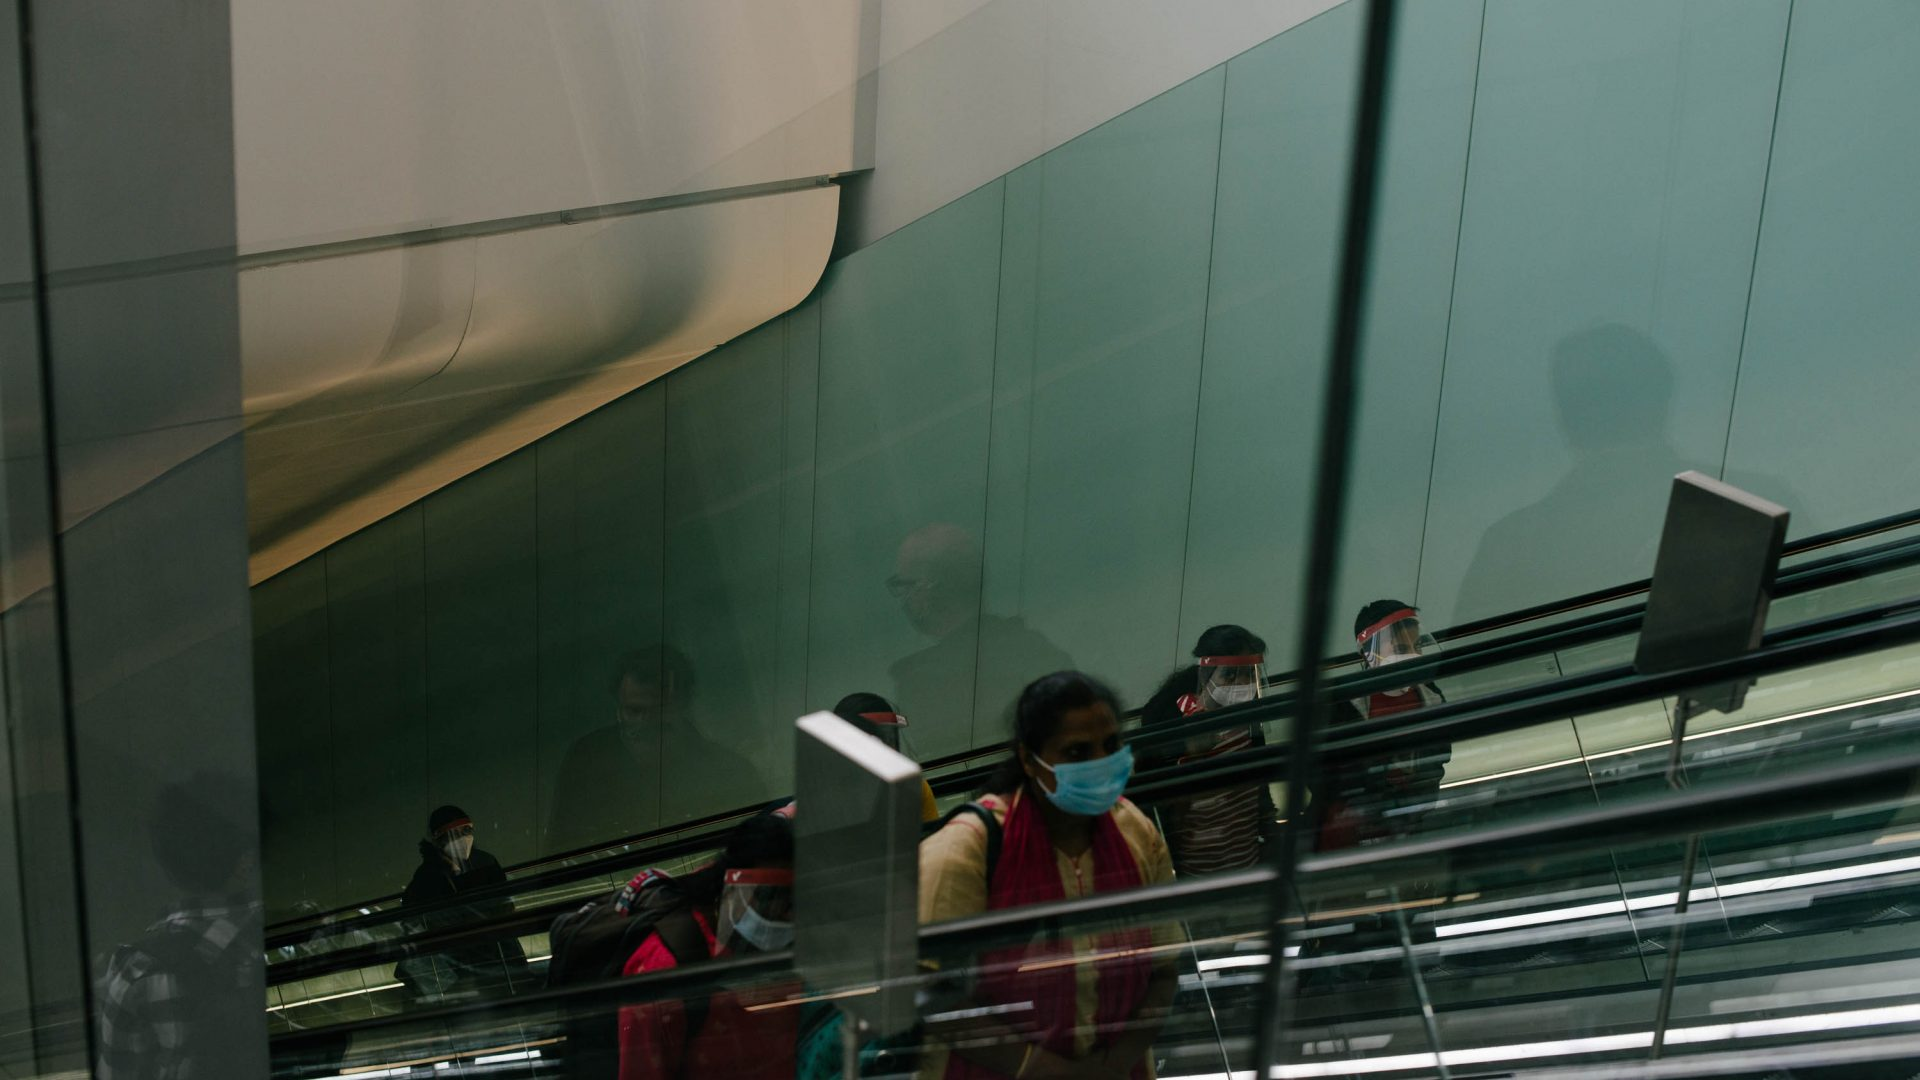 People at the airport on an escalator wearing masks.